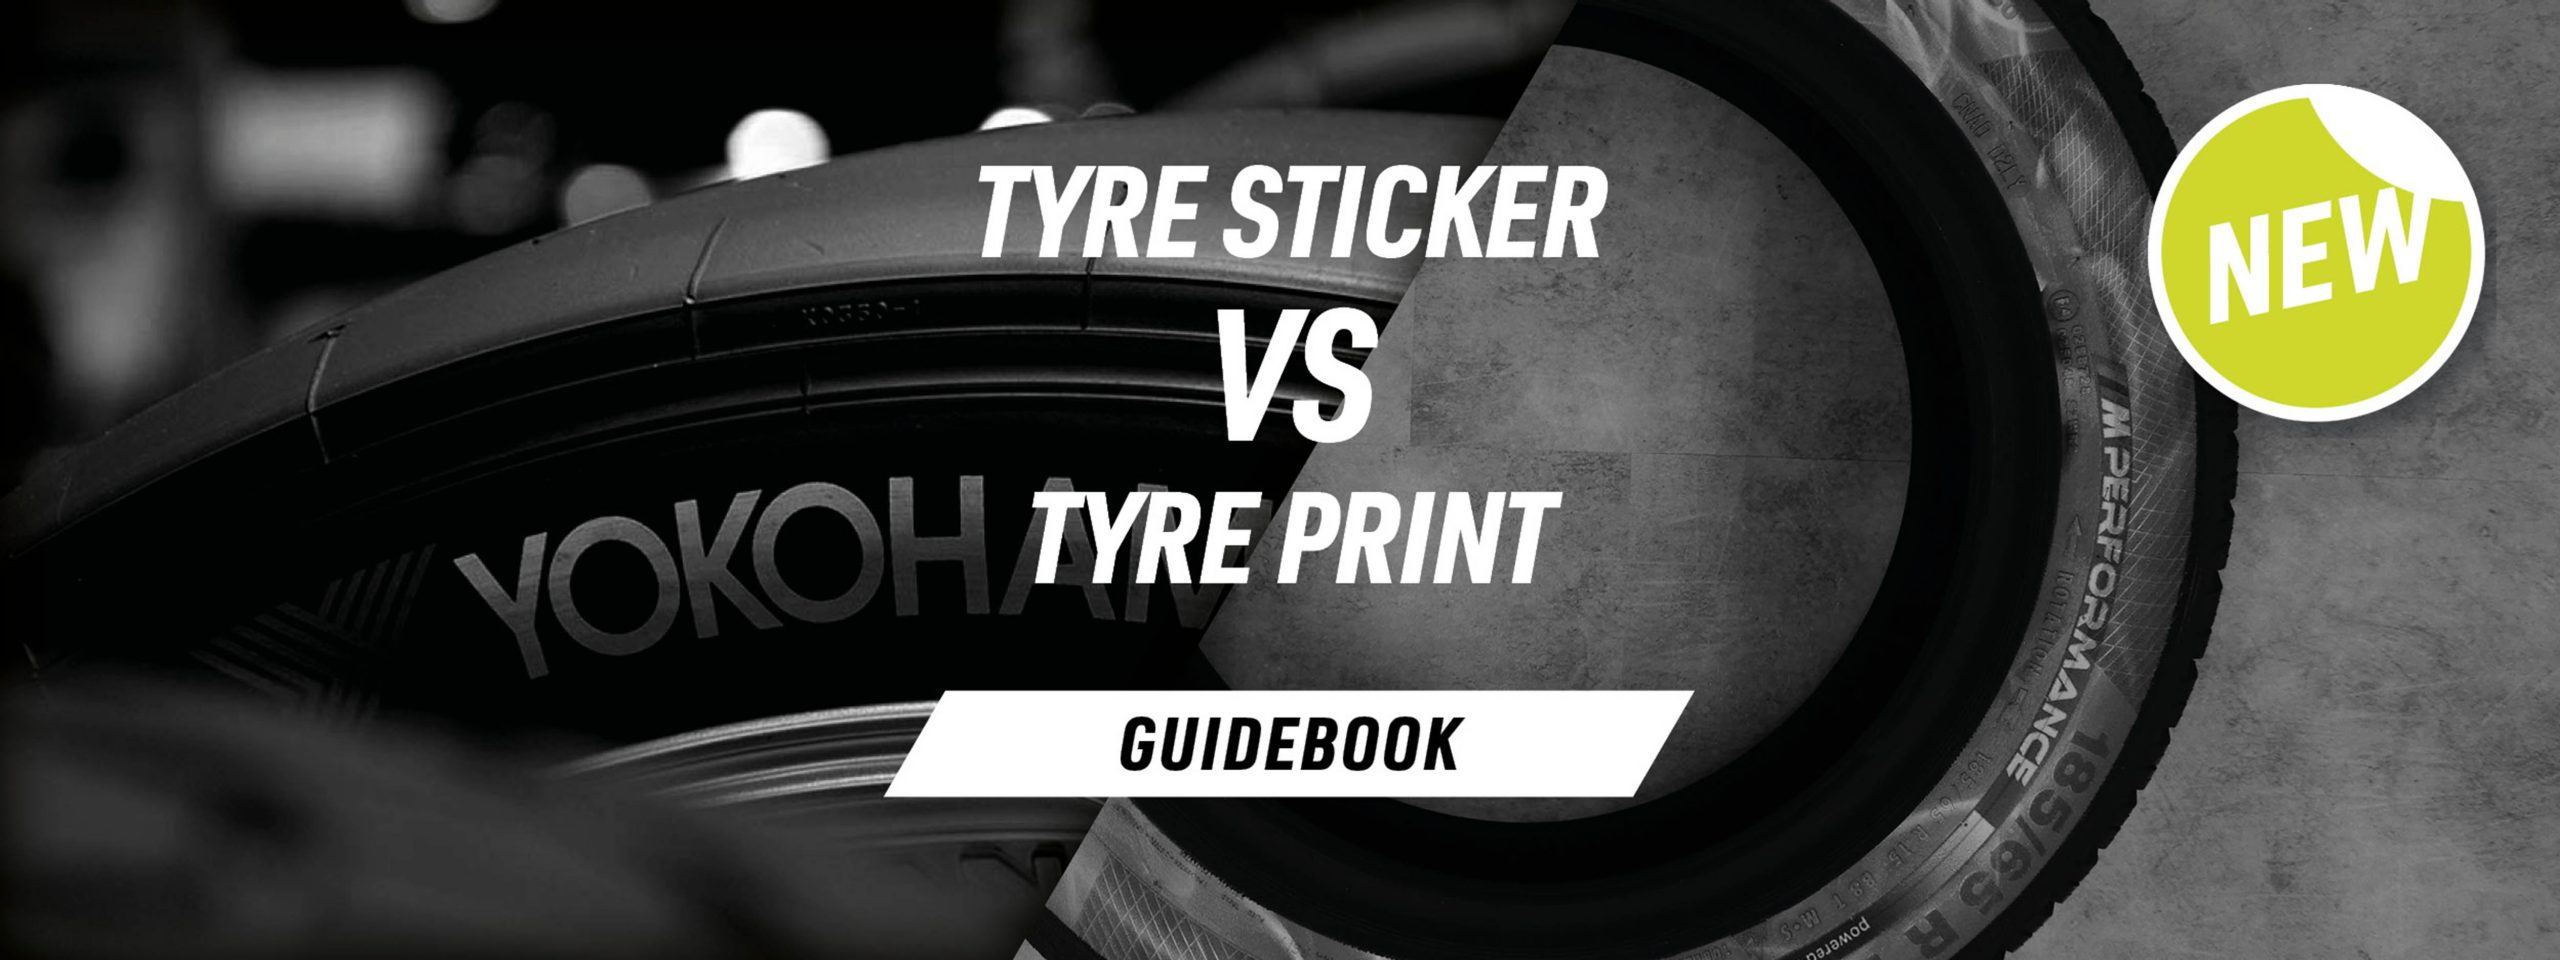 tire-sticker-vs-tire-print-guidebook